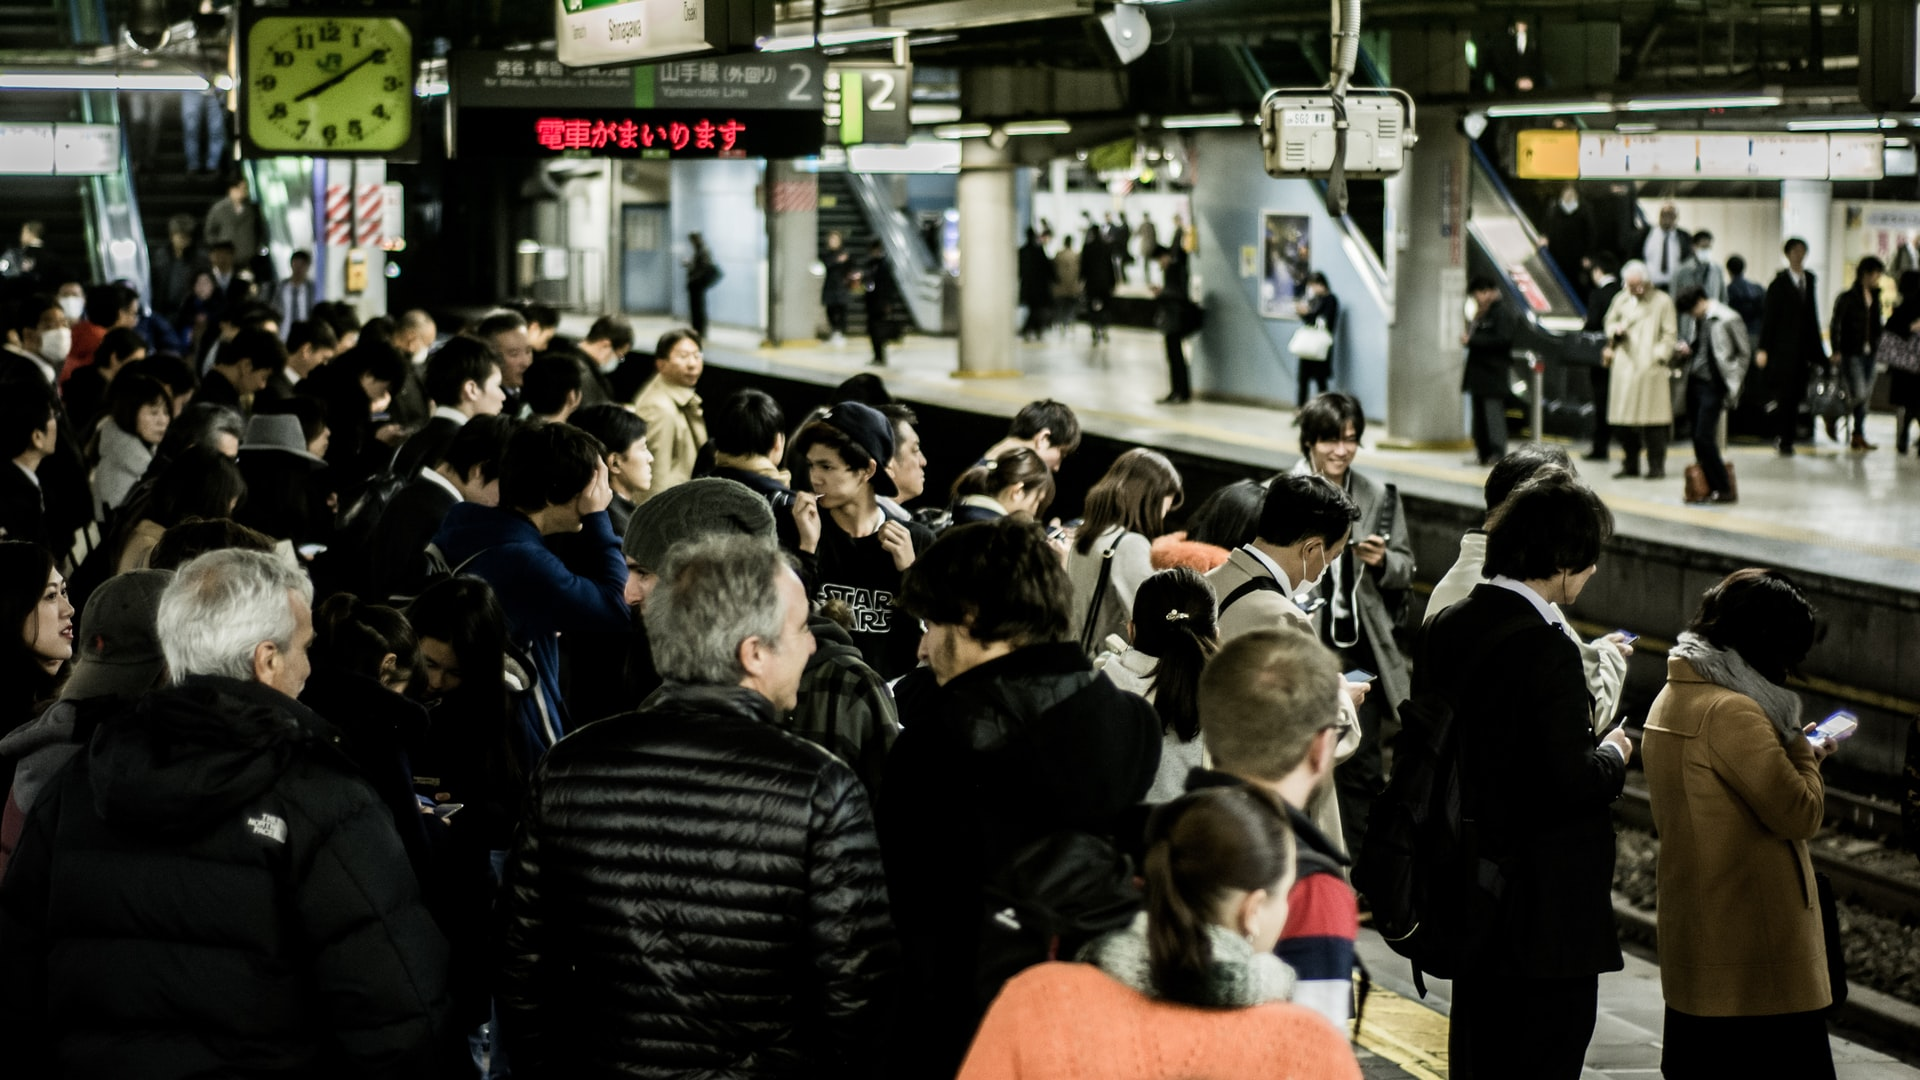 why is the Tokyo subway so busy?